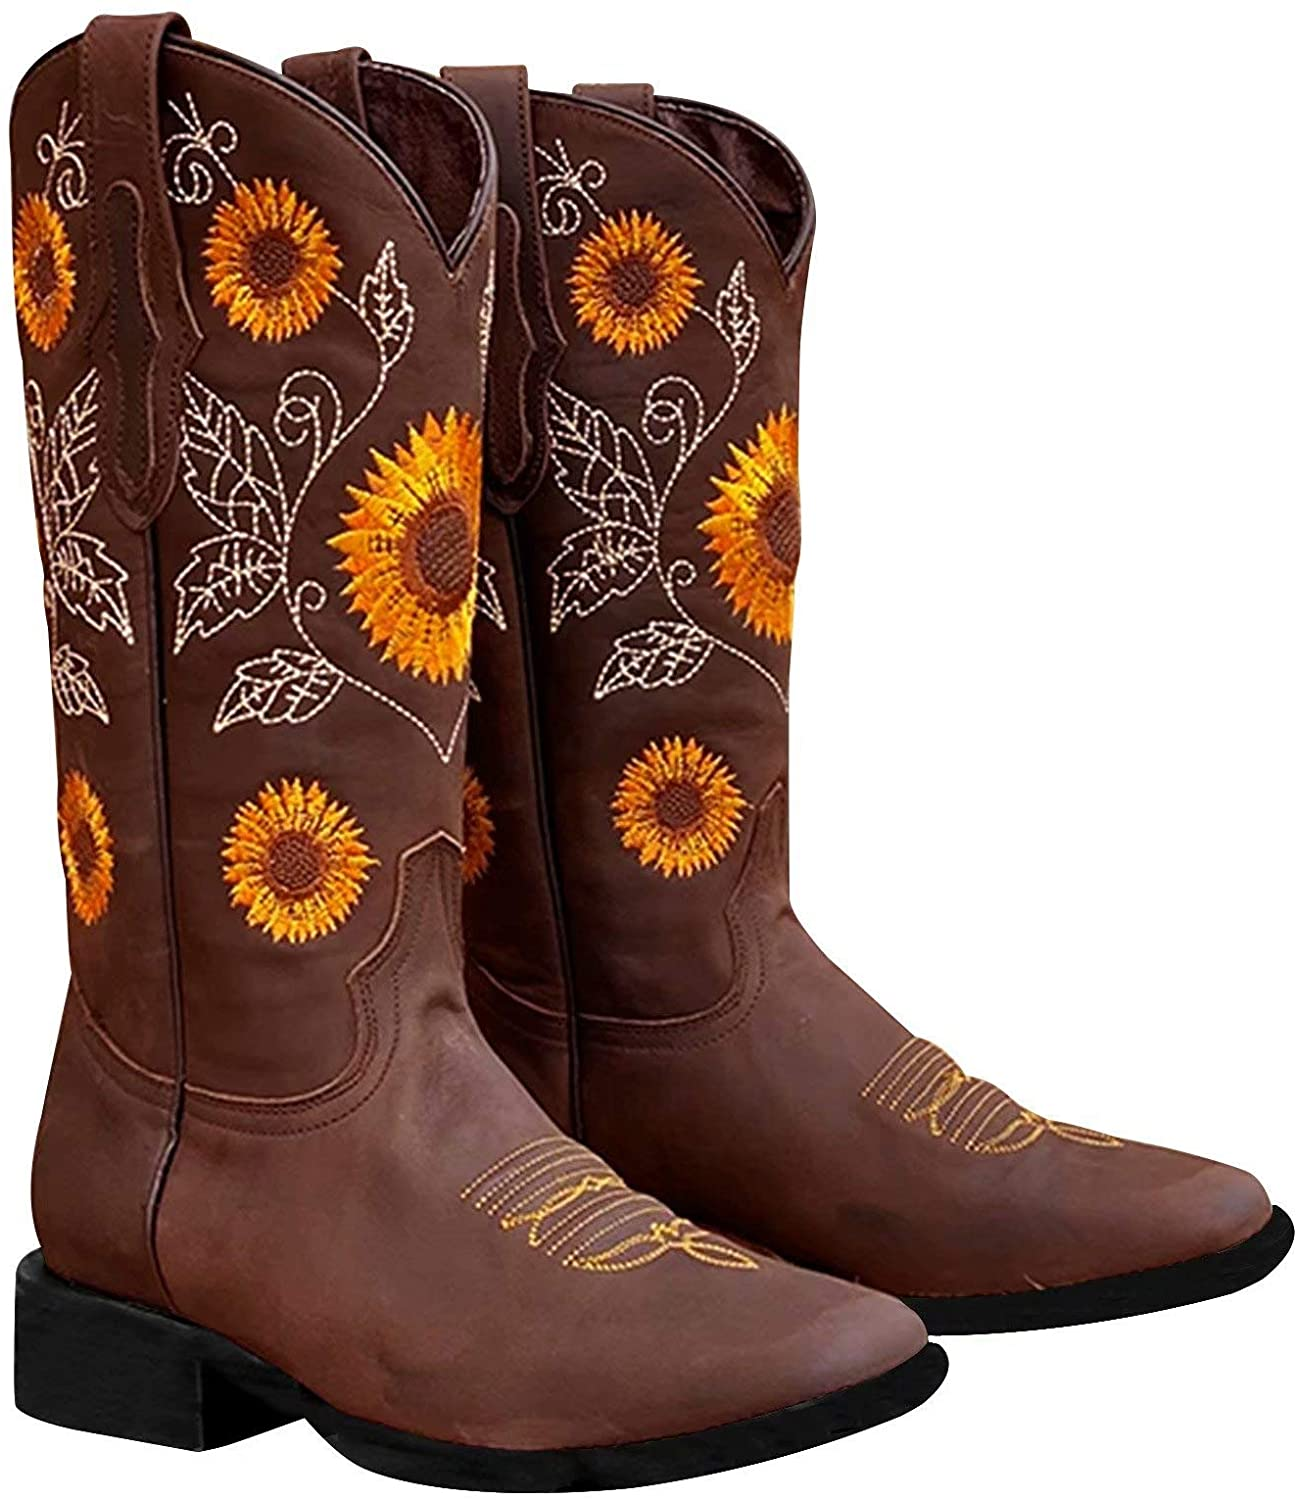 Newbely Womens Mid-Calf Sunflower Embroidered Boots Snow Heels Cowboy Boots